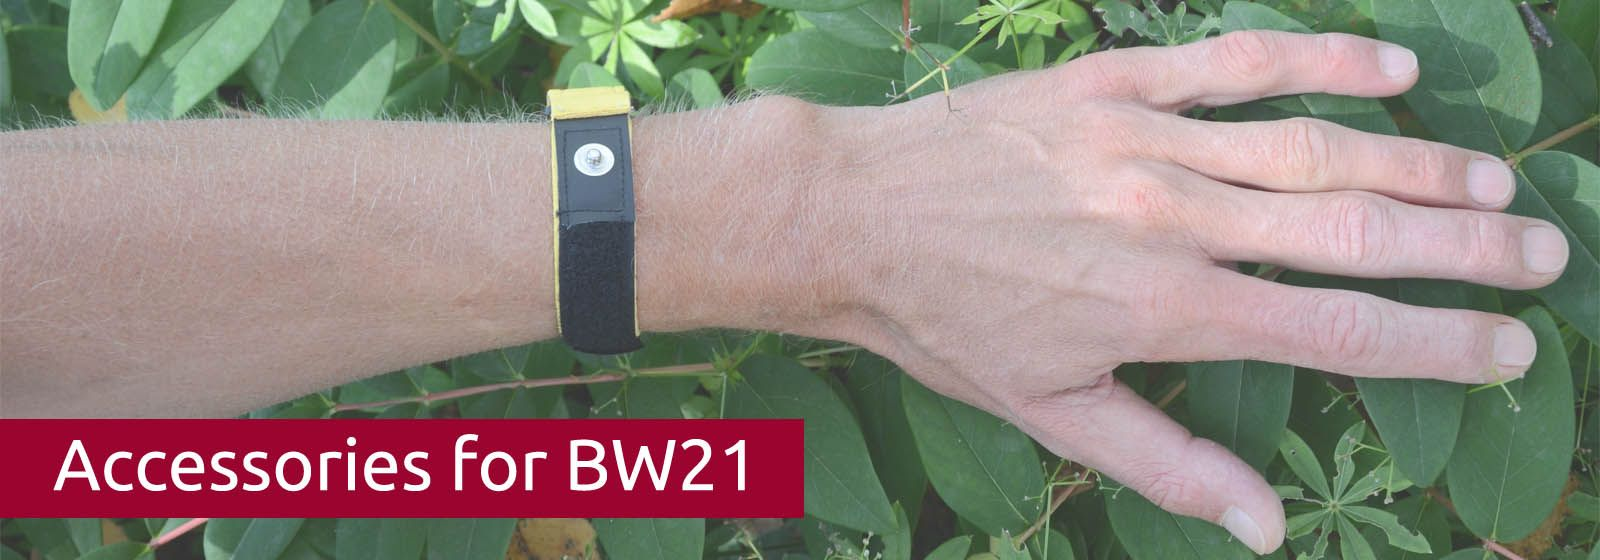 Accessories For Bw21 Parasite Zapper Alternative Medicine